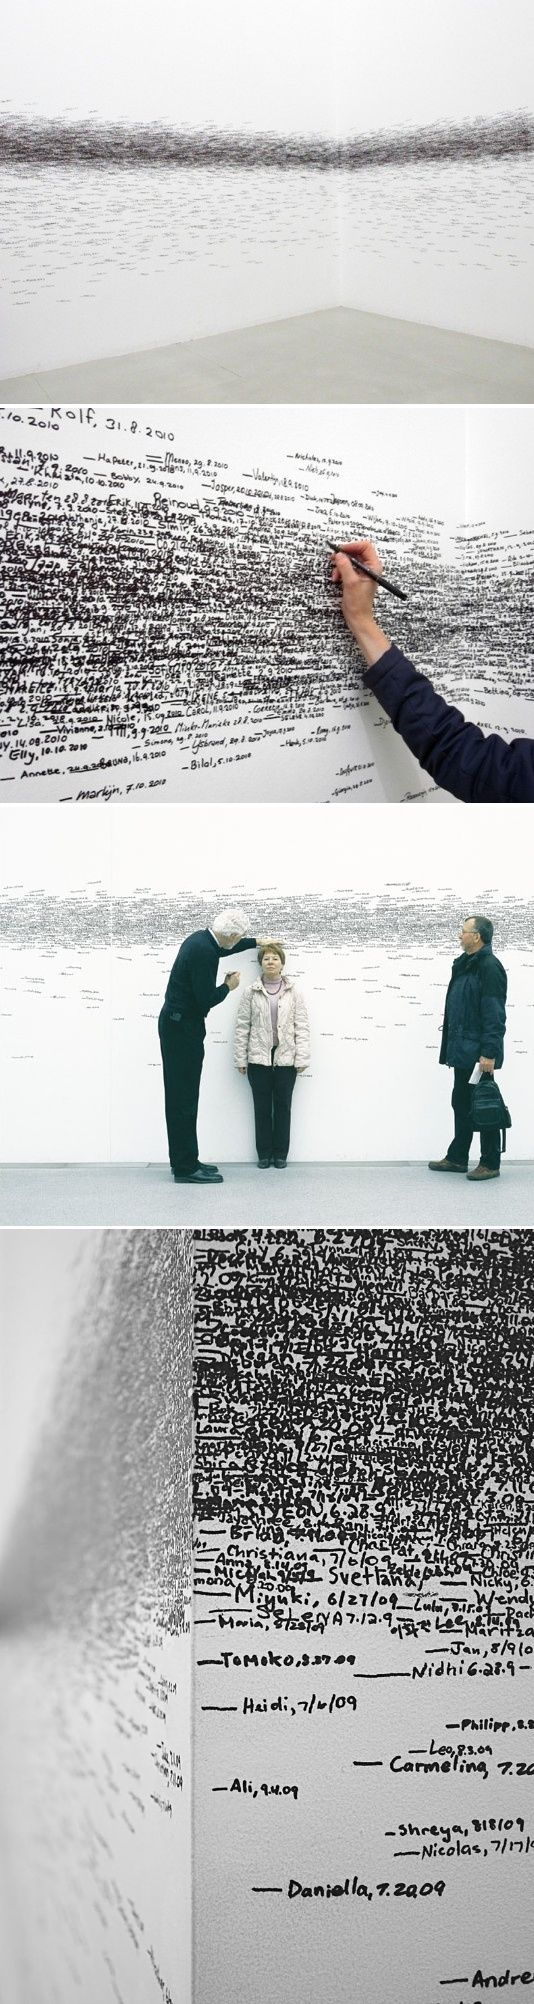 """Roman Ondak, """"Measuring the Universe,"""" a performative installation. Museum goers have their height measured and marked on the wall as they enter the gallery, forming a linear band around the walls."""